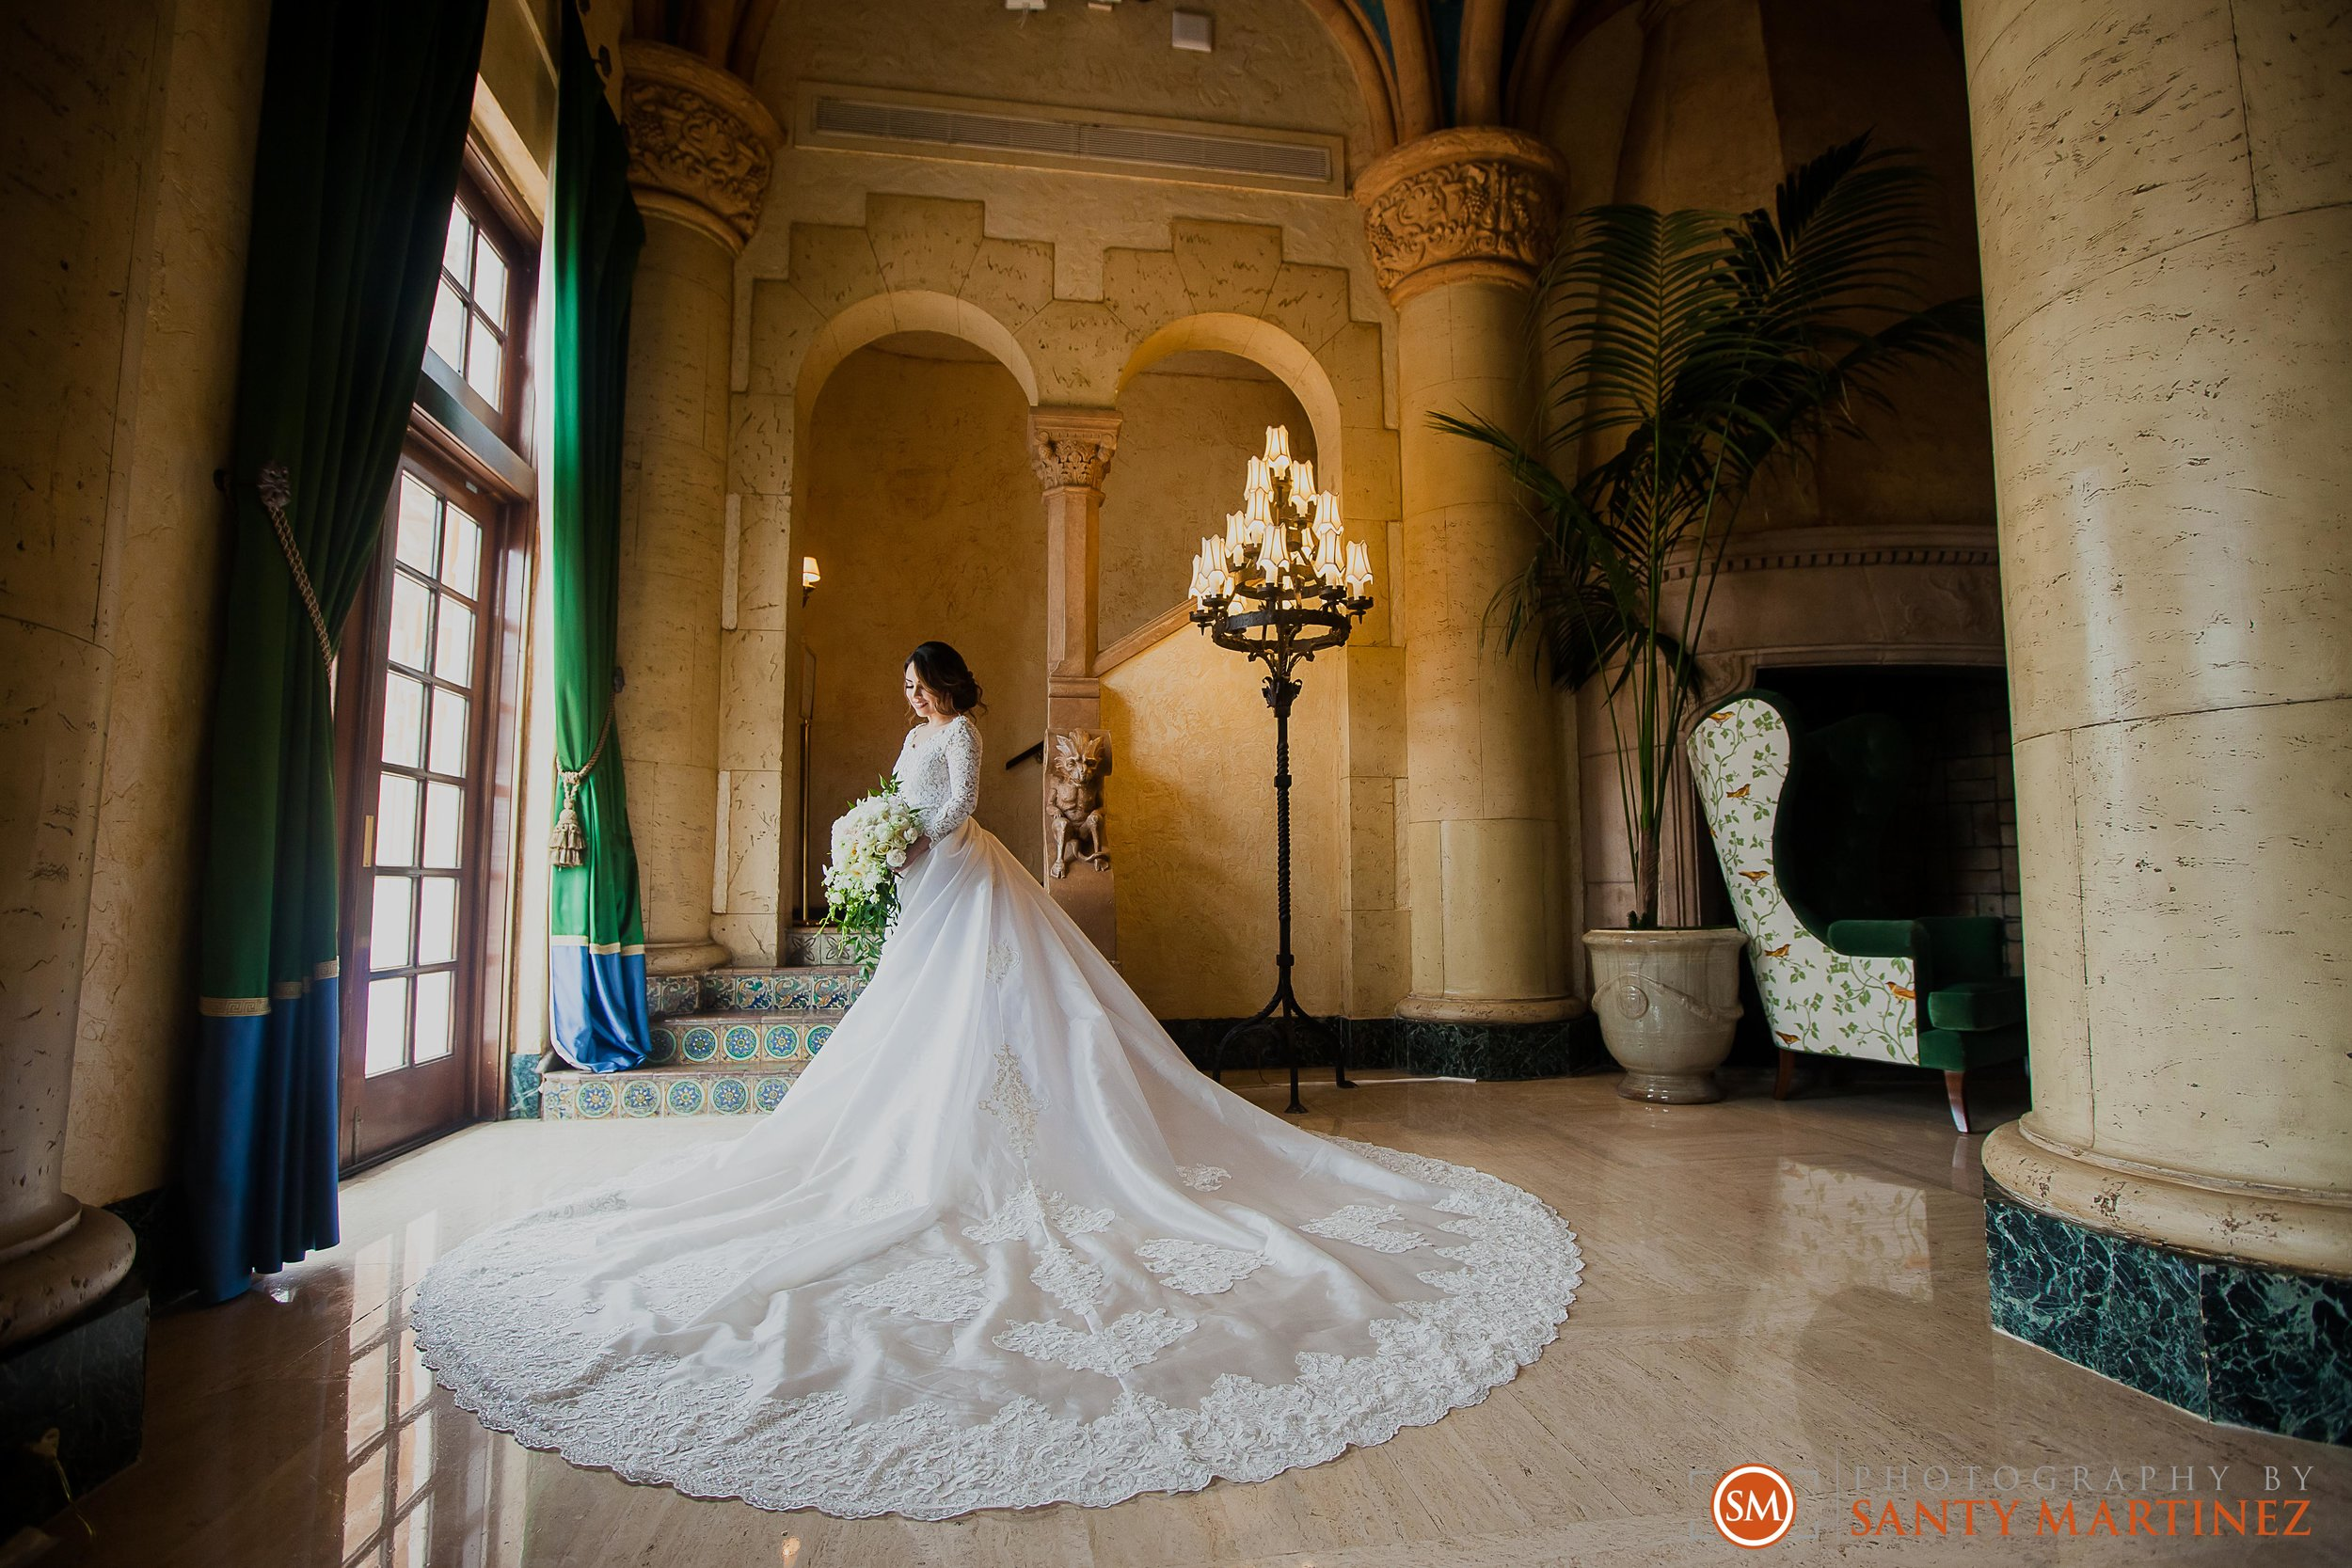 Deering Estate Wedding - Santy Martinez Photography-9.jpg